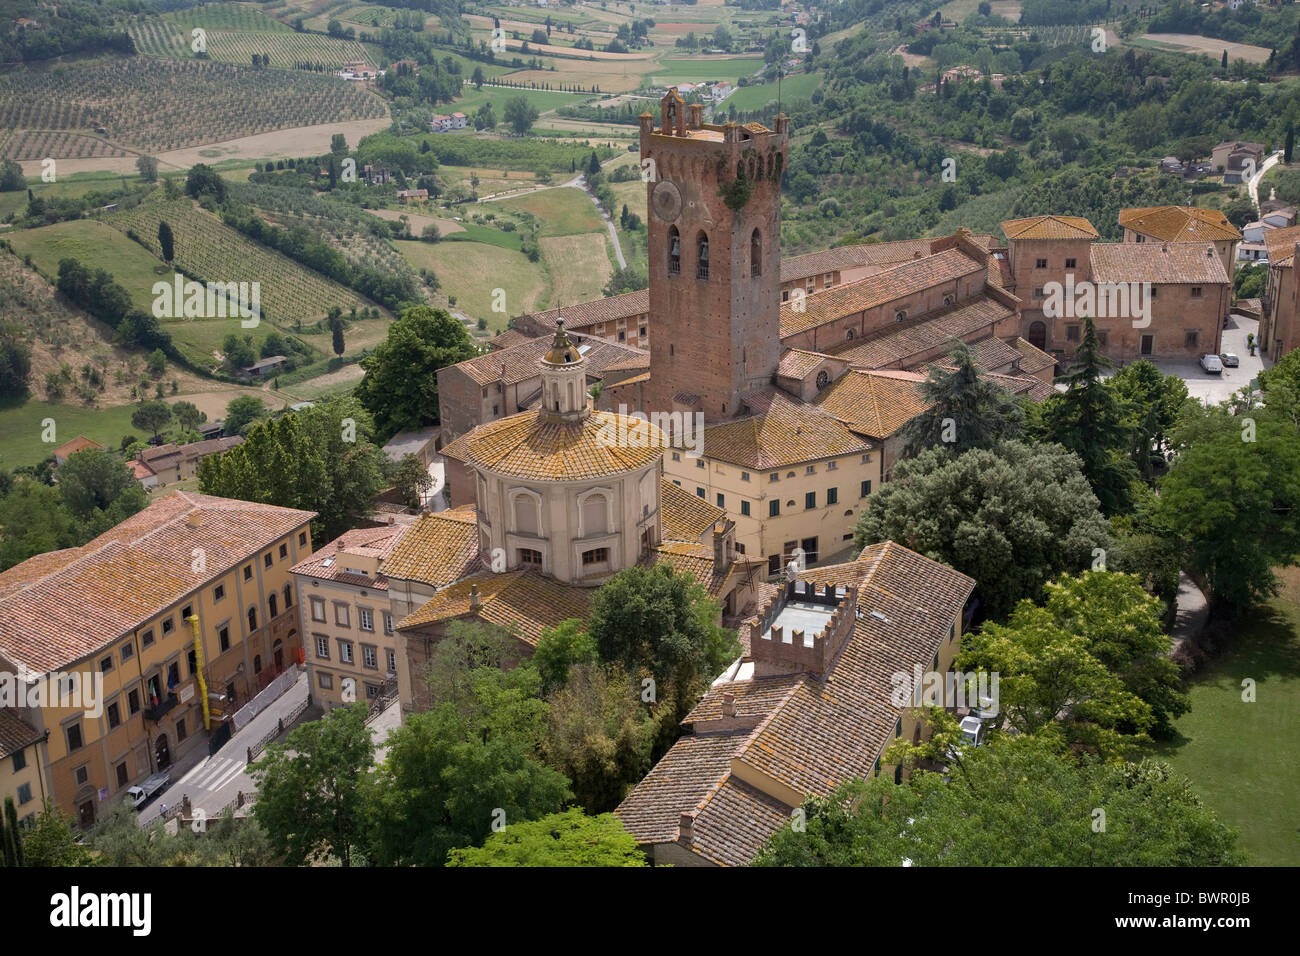 Italy Europe Tuscany Toscana San Miniato View from Tower of Frederick viewpoint medieval mediaeval town San - Stock Image